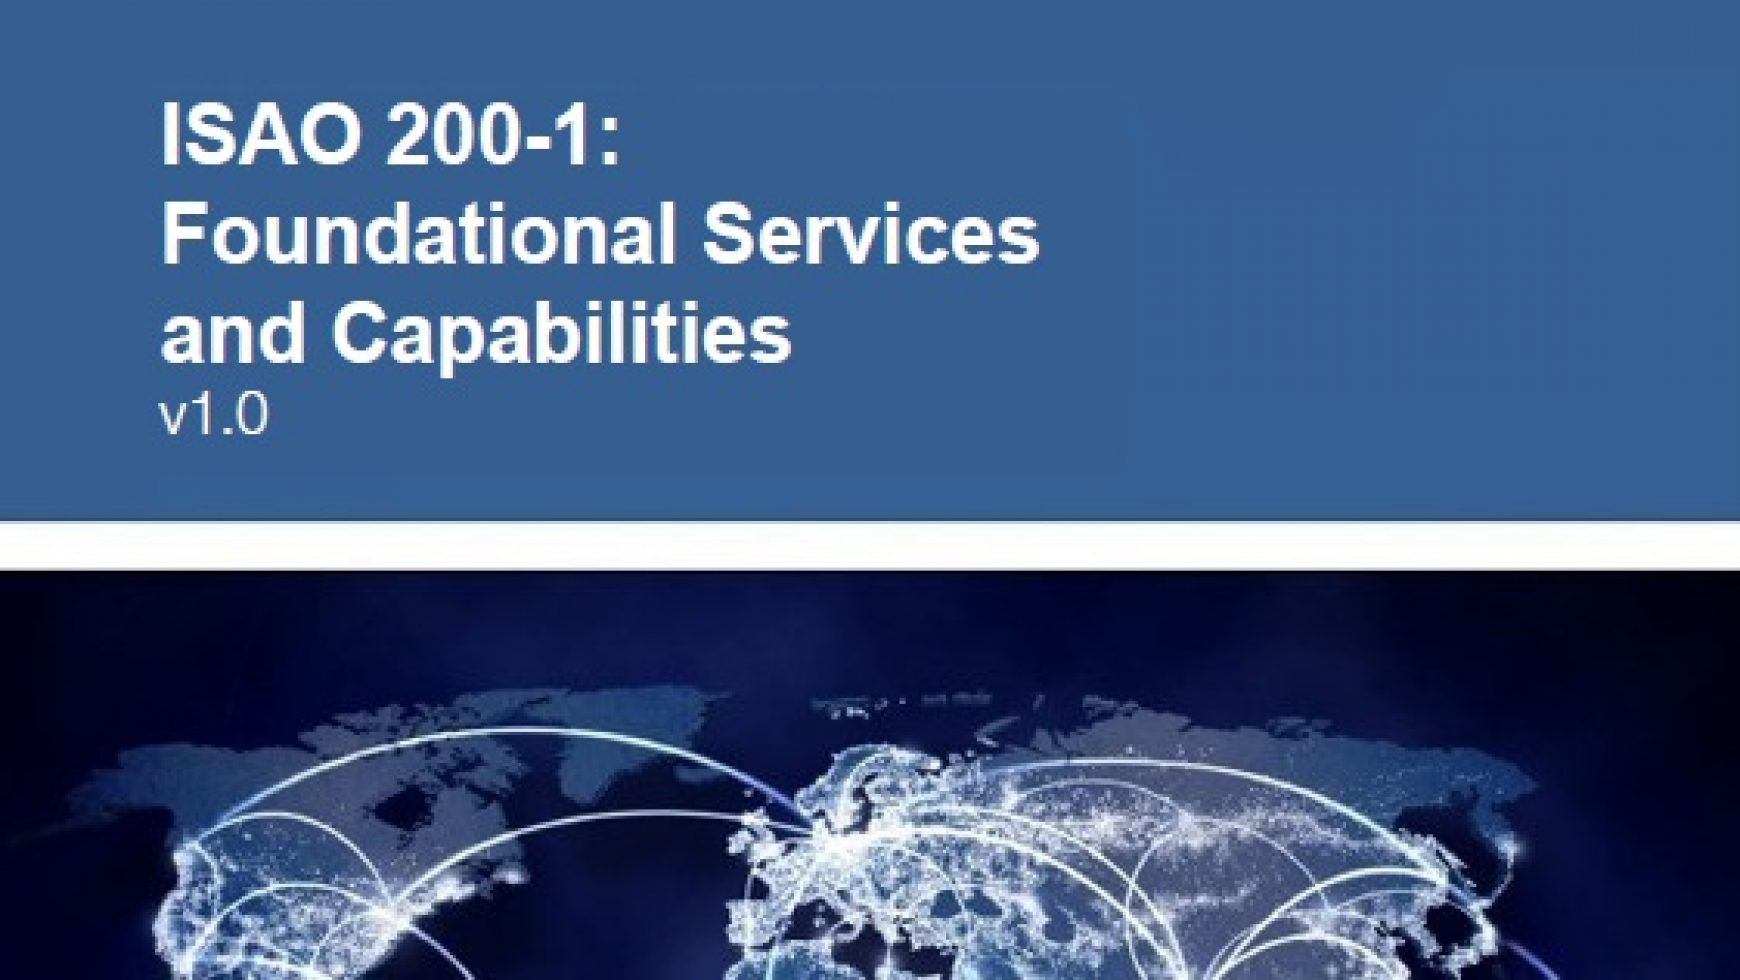 ISAO 200-1: Foundational Services and Capabilities